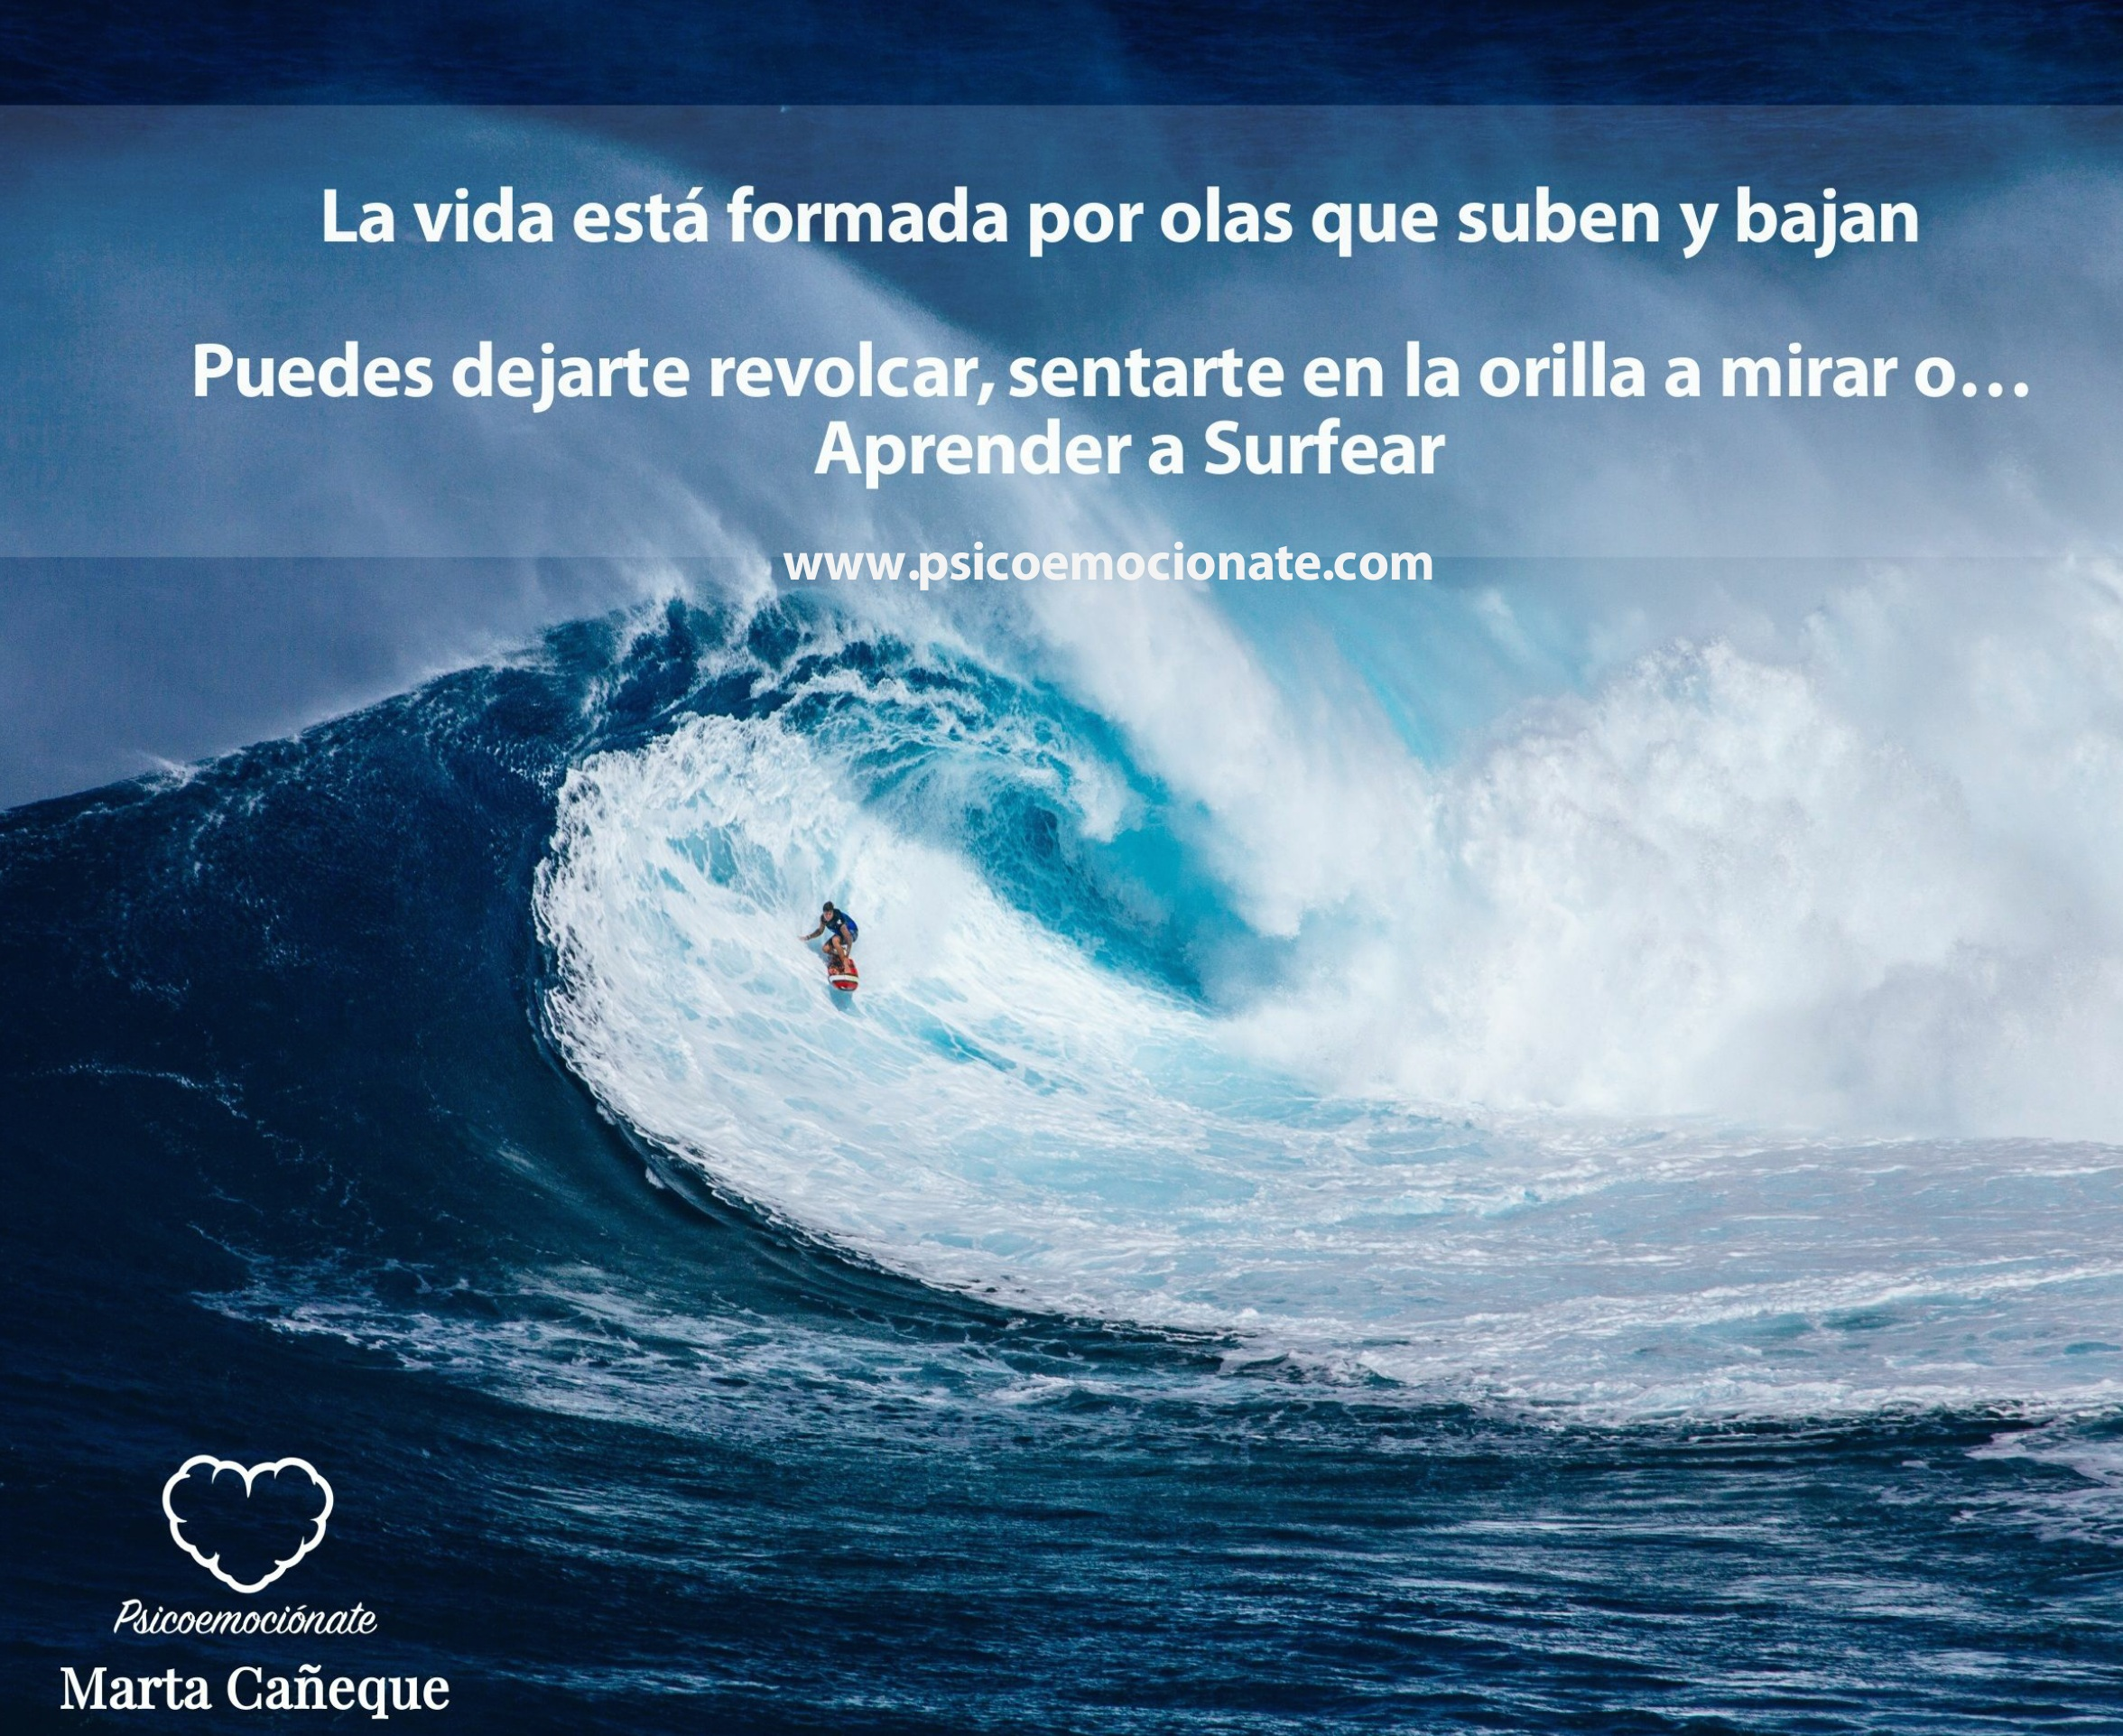 mindfulness surfear psicoemocionate